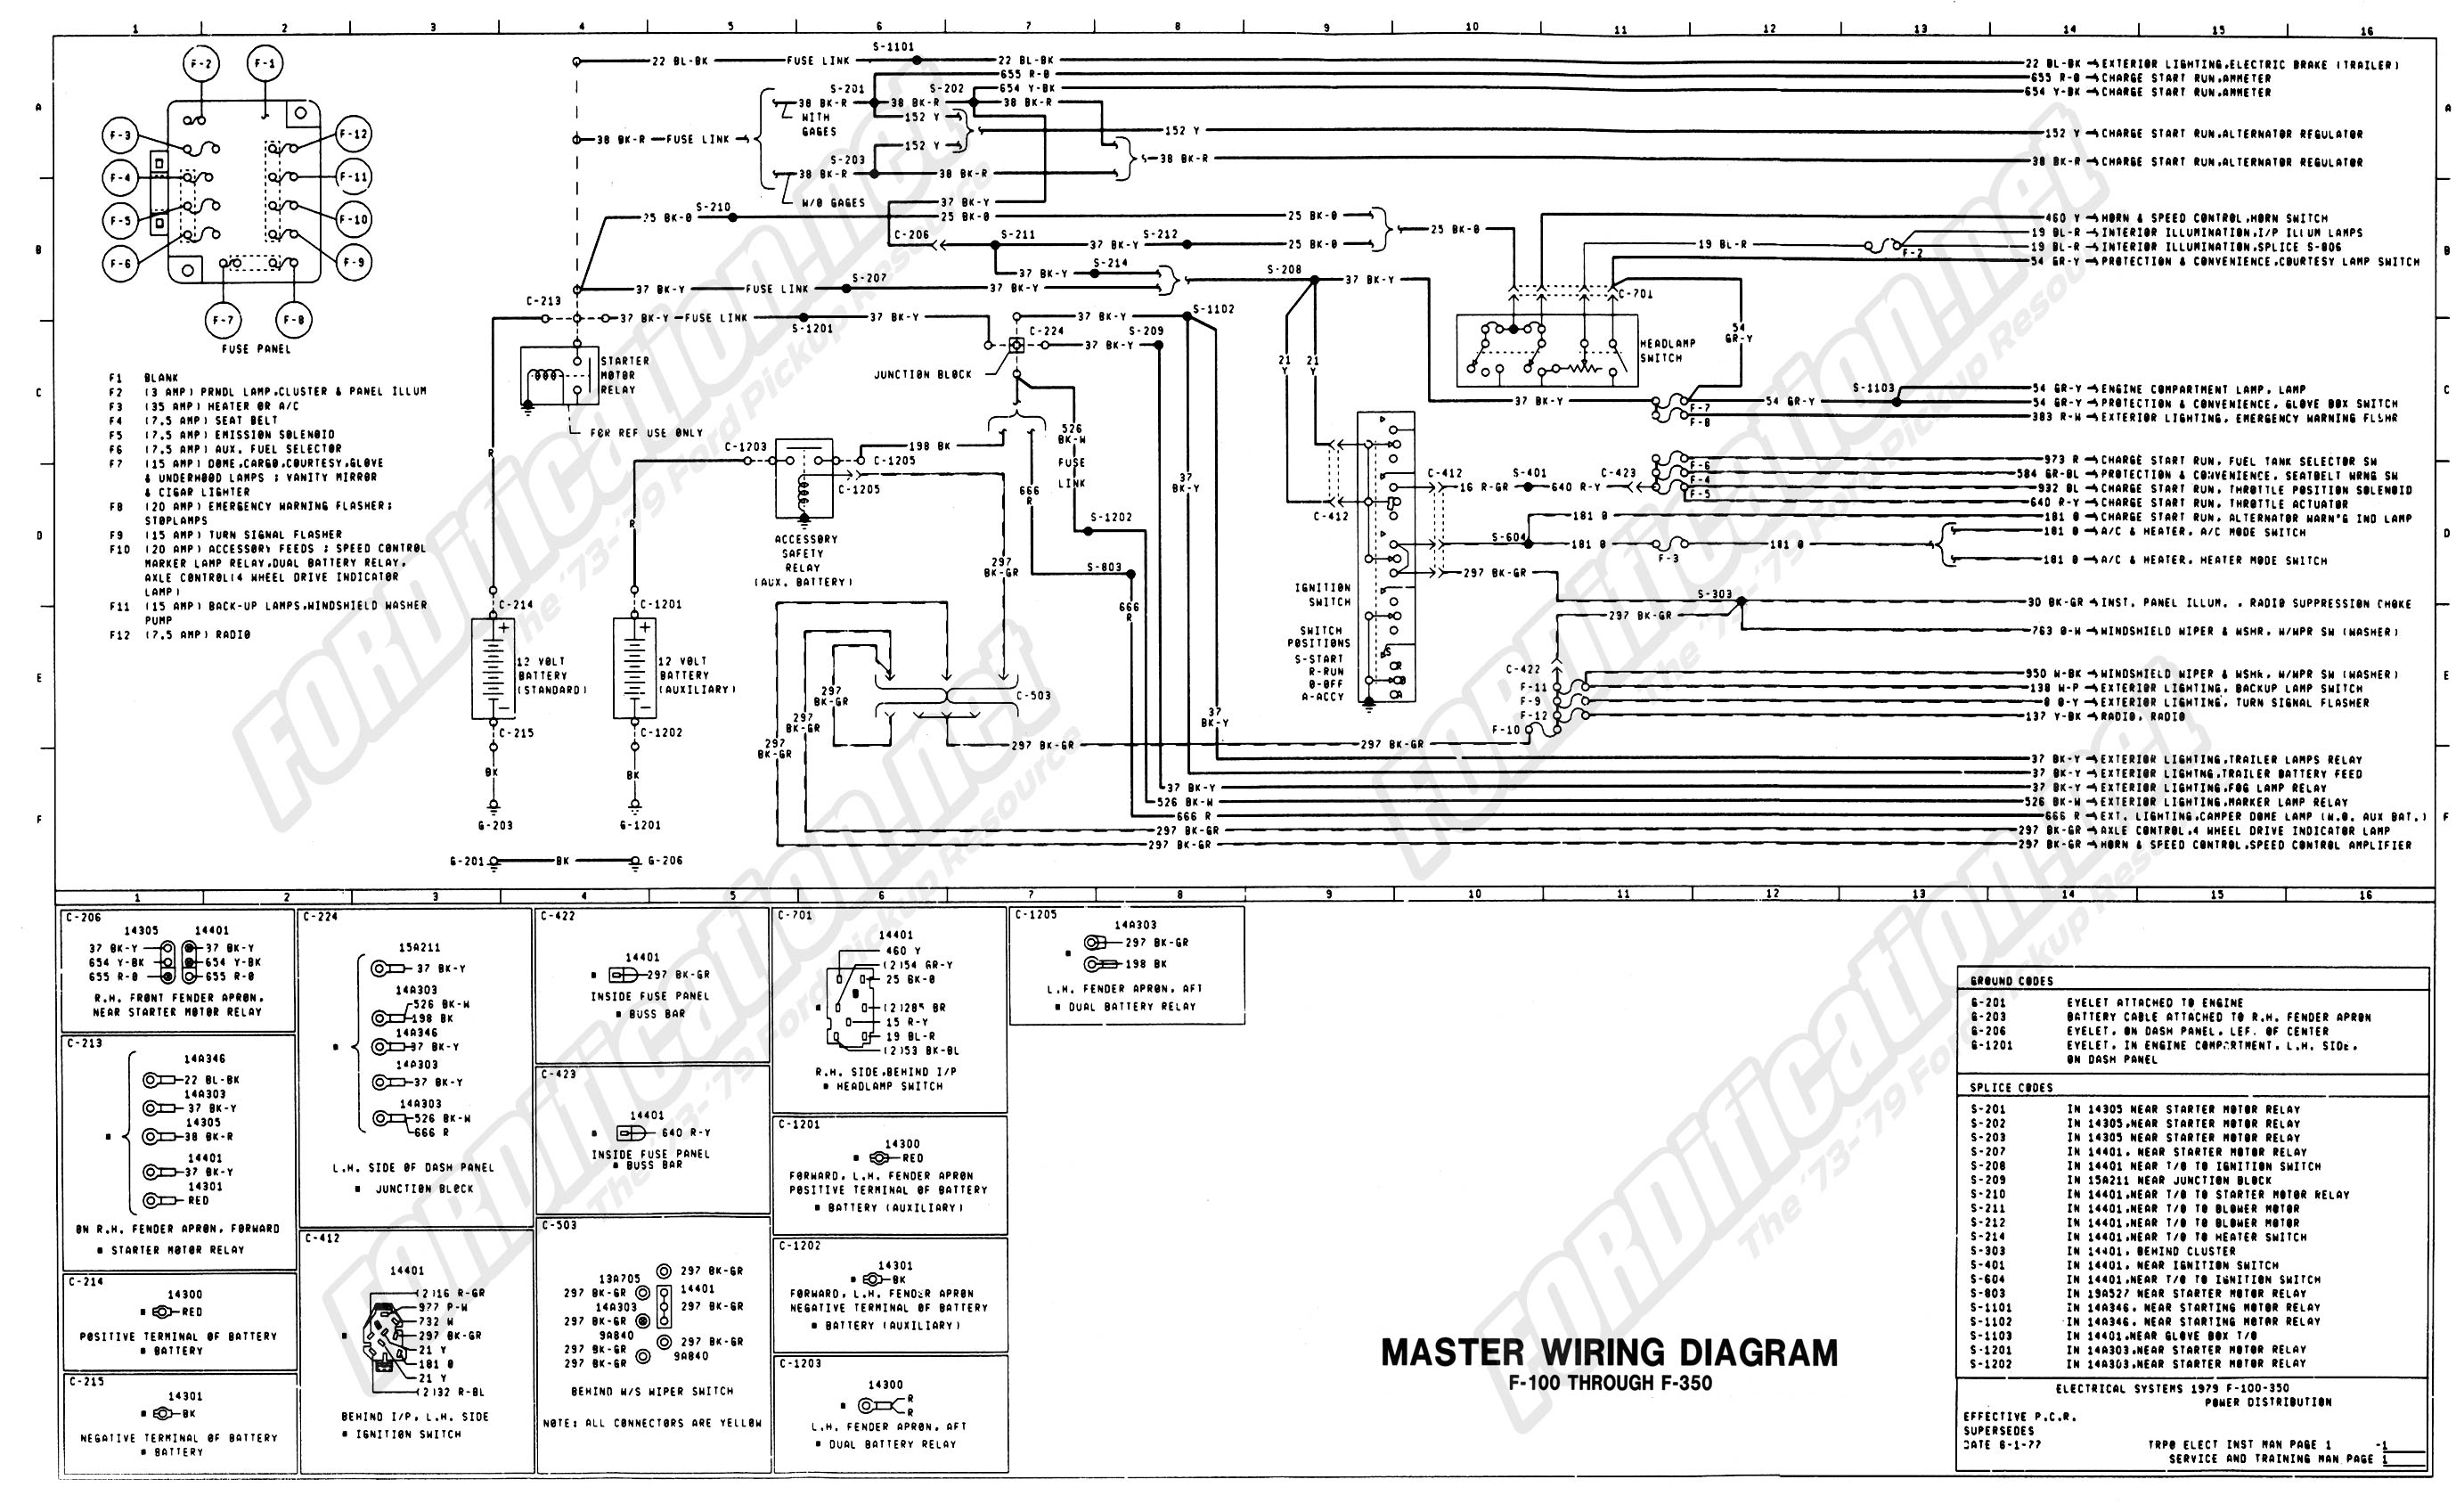 2001 international 4700 headlight wiring diagram wiring Mini Truck Wiring Diagram